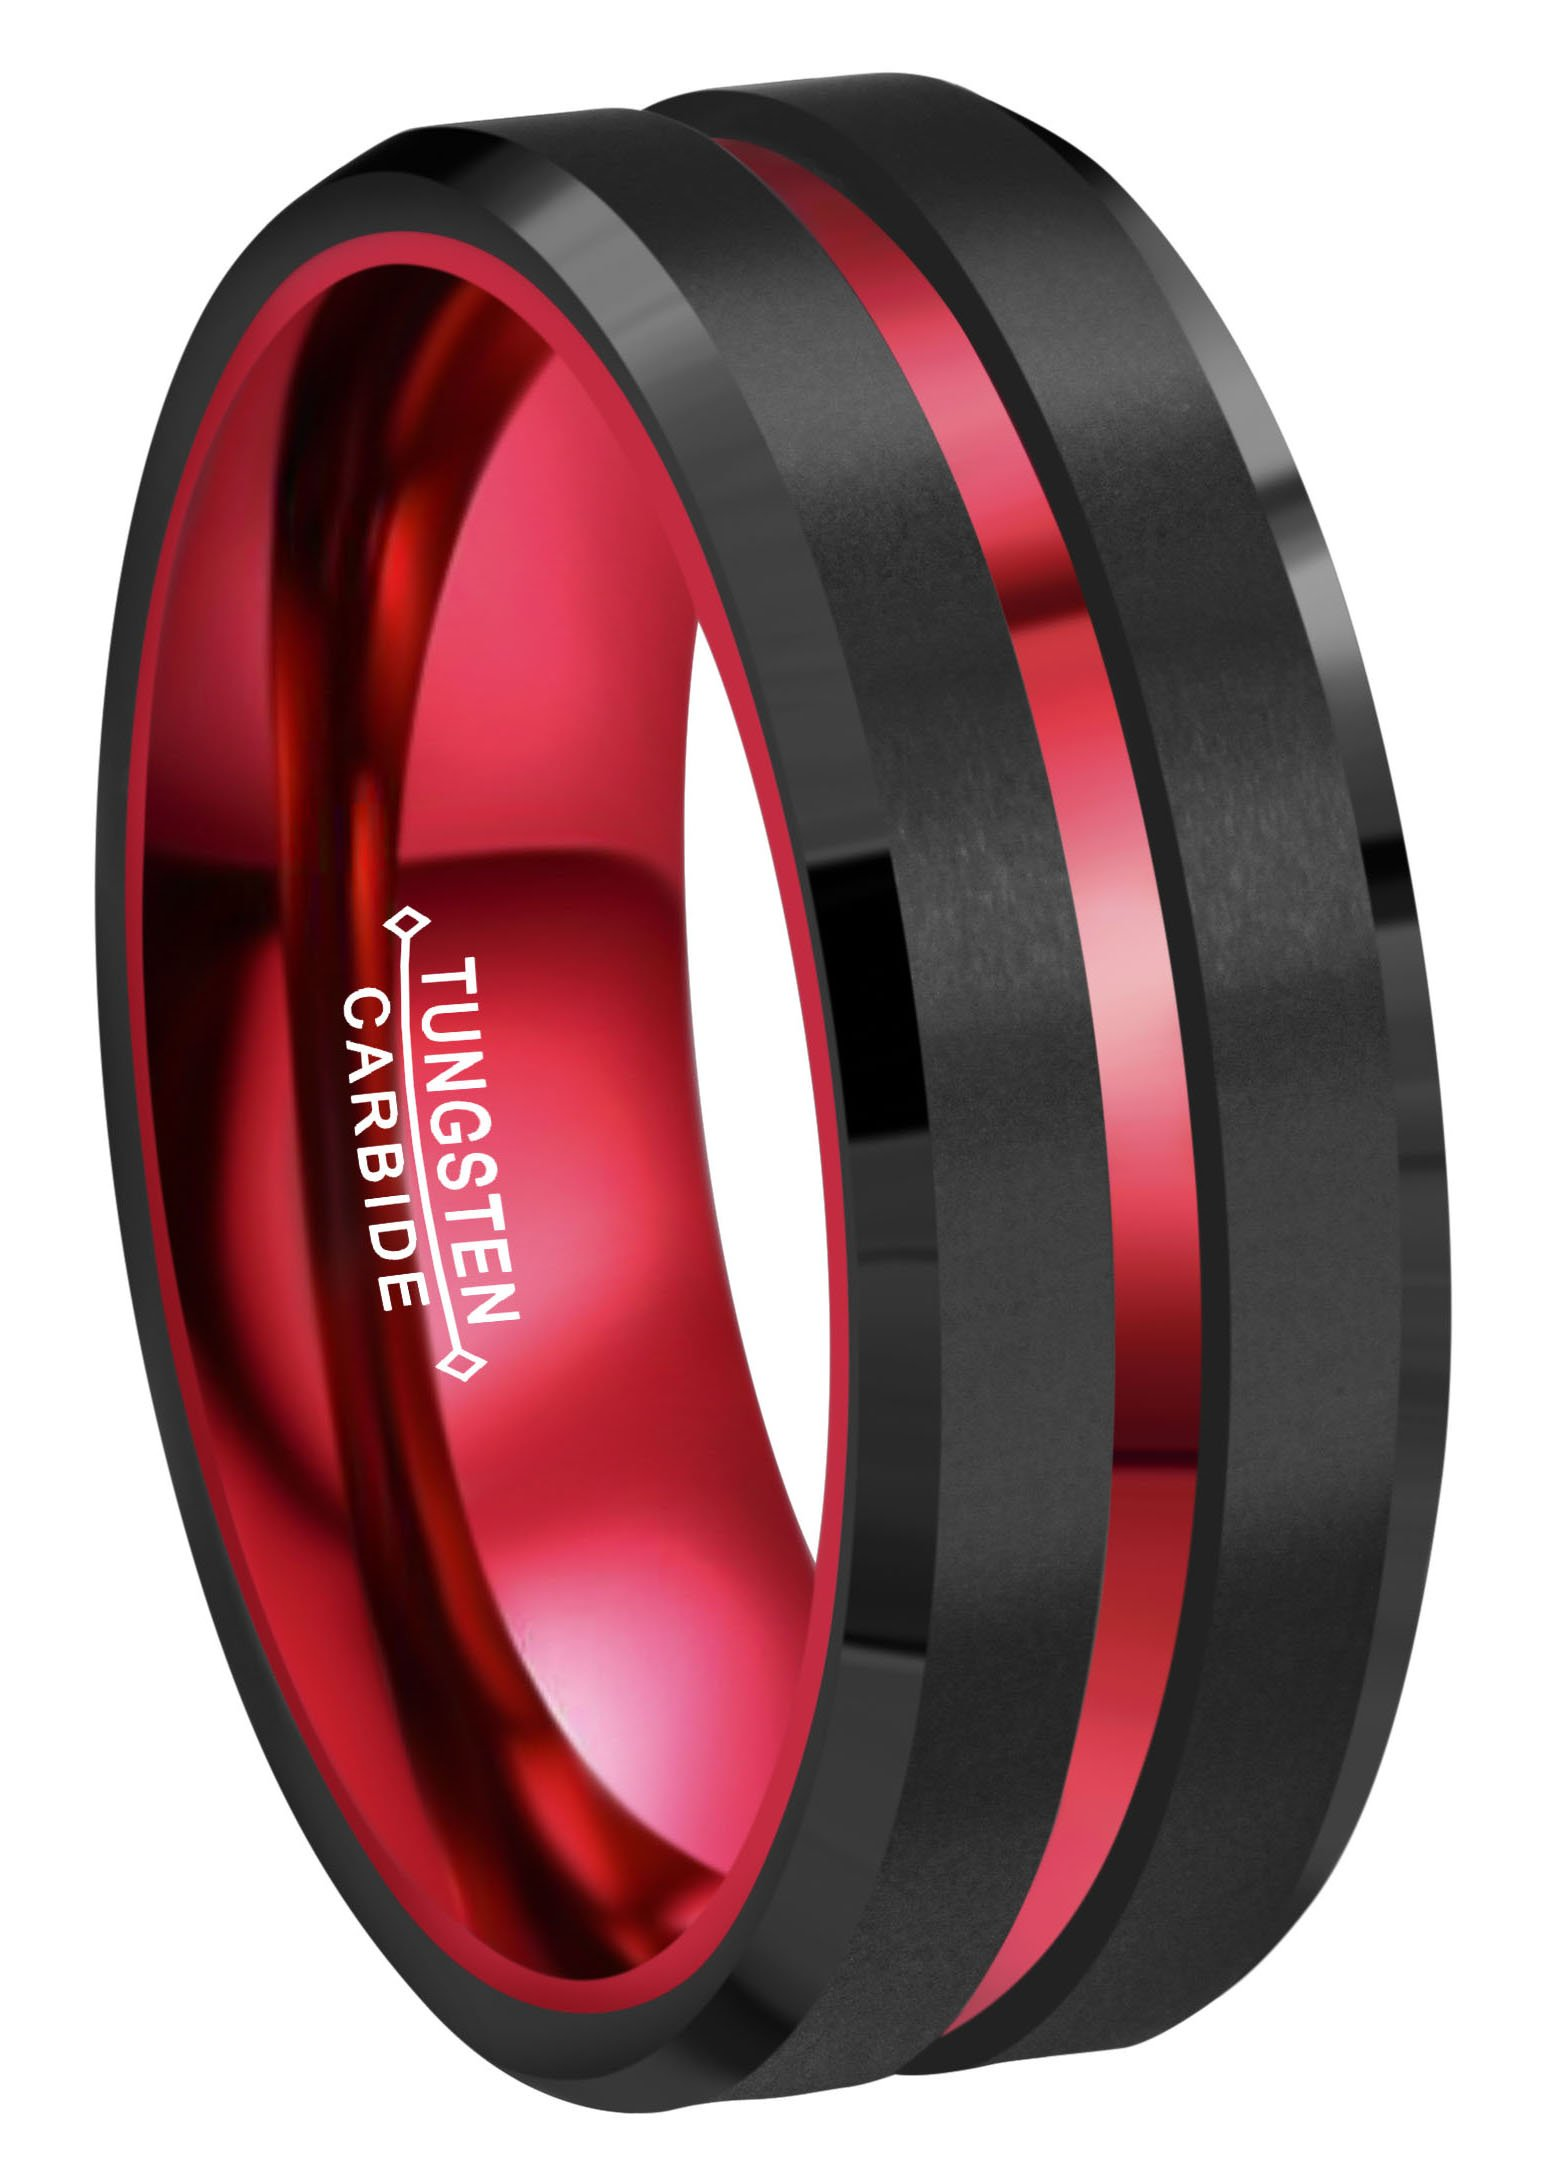 CROWNAL 8mm Red Black Tungsten Wedding Bands Rings Men Women Red Groove Matte Finish Size 6 To 16 (8mm,10)